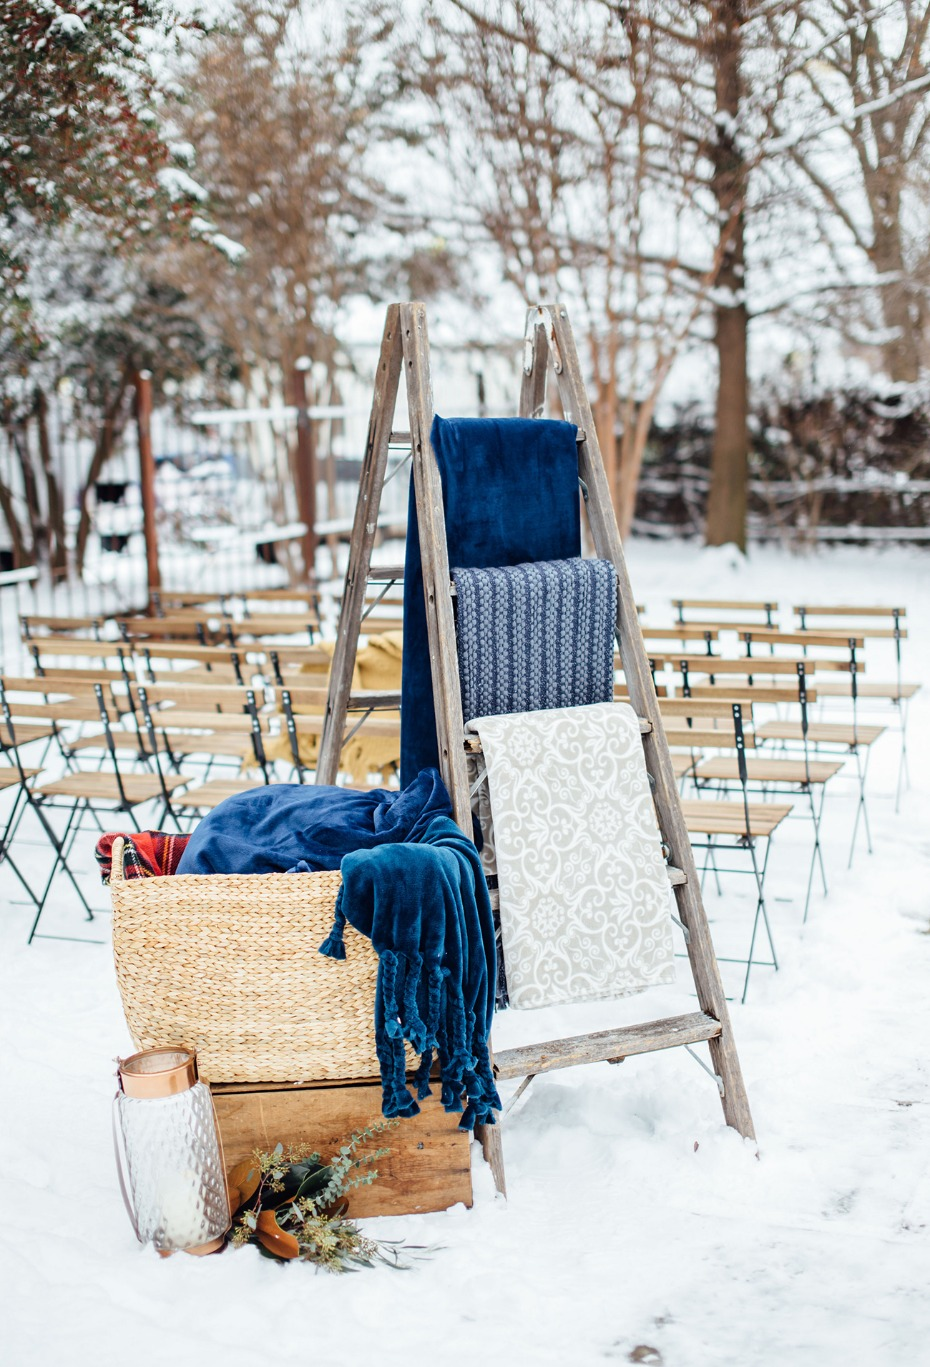 A winter wedding needs BLANKETS